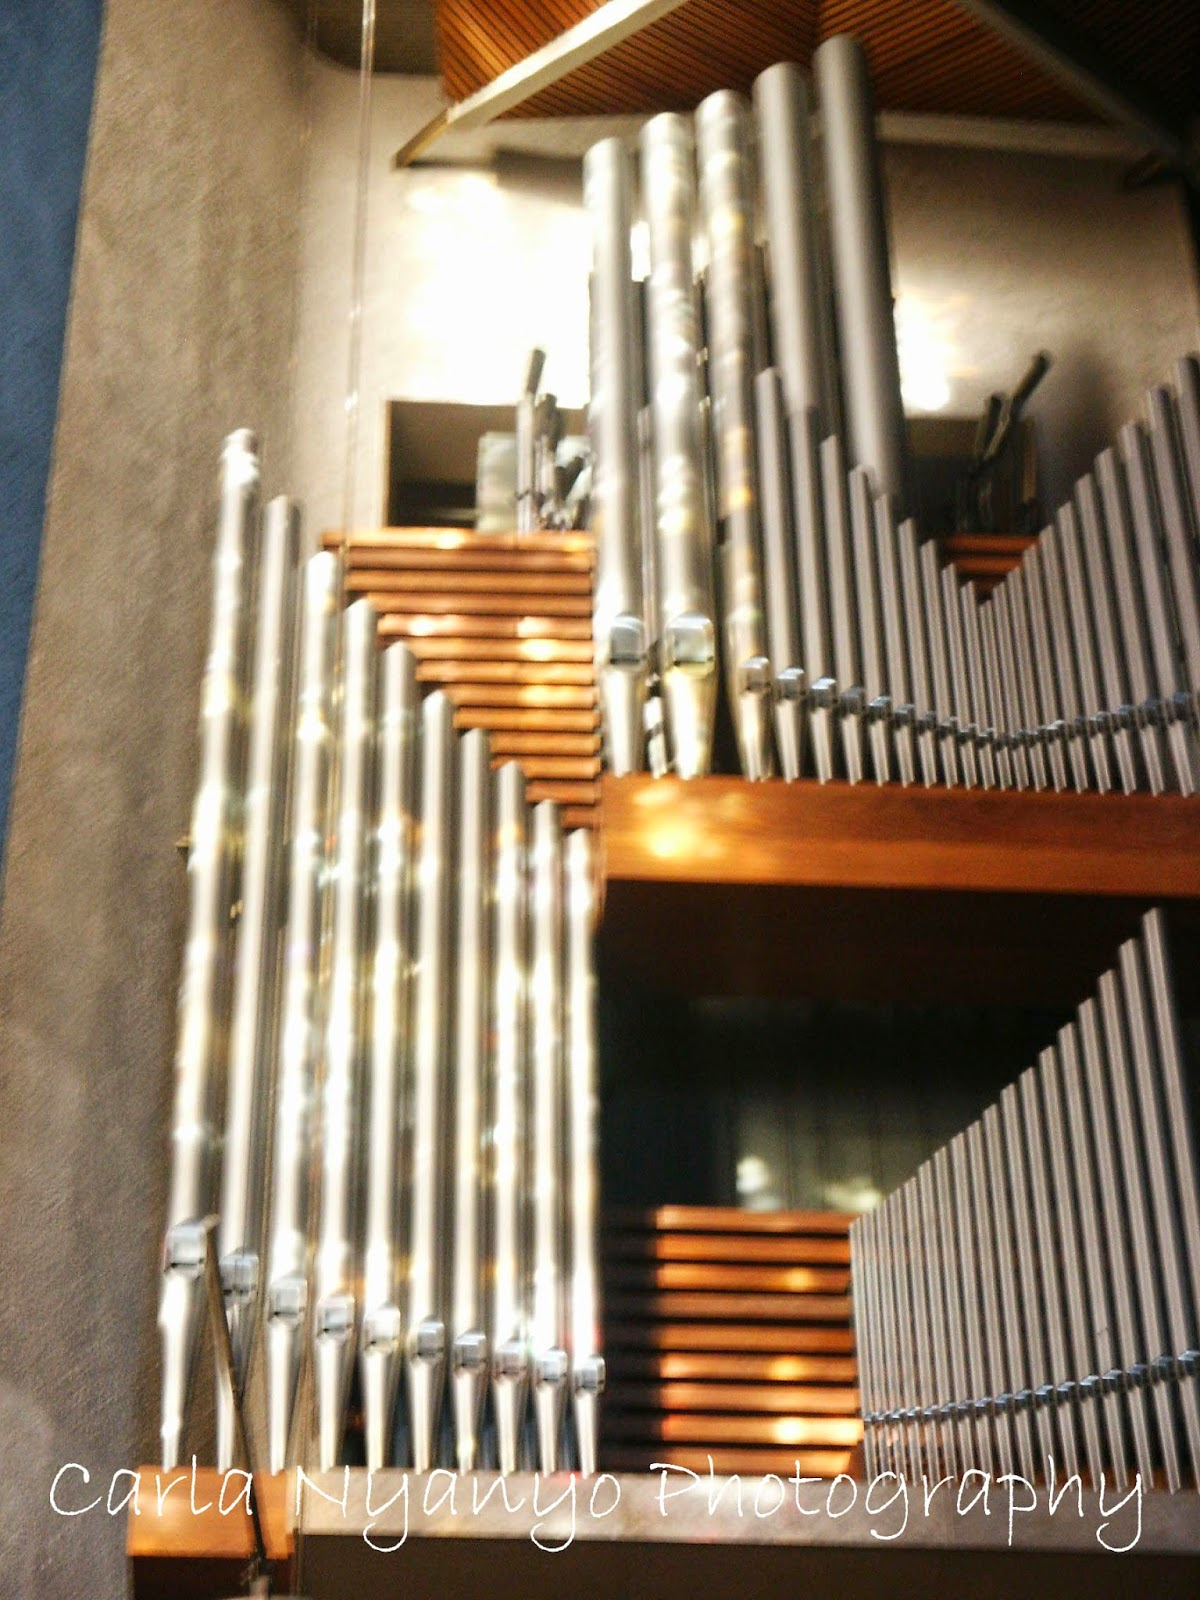 sunlight on organ pipes